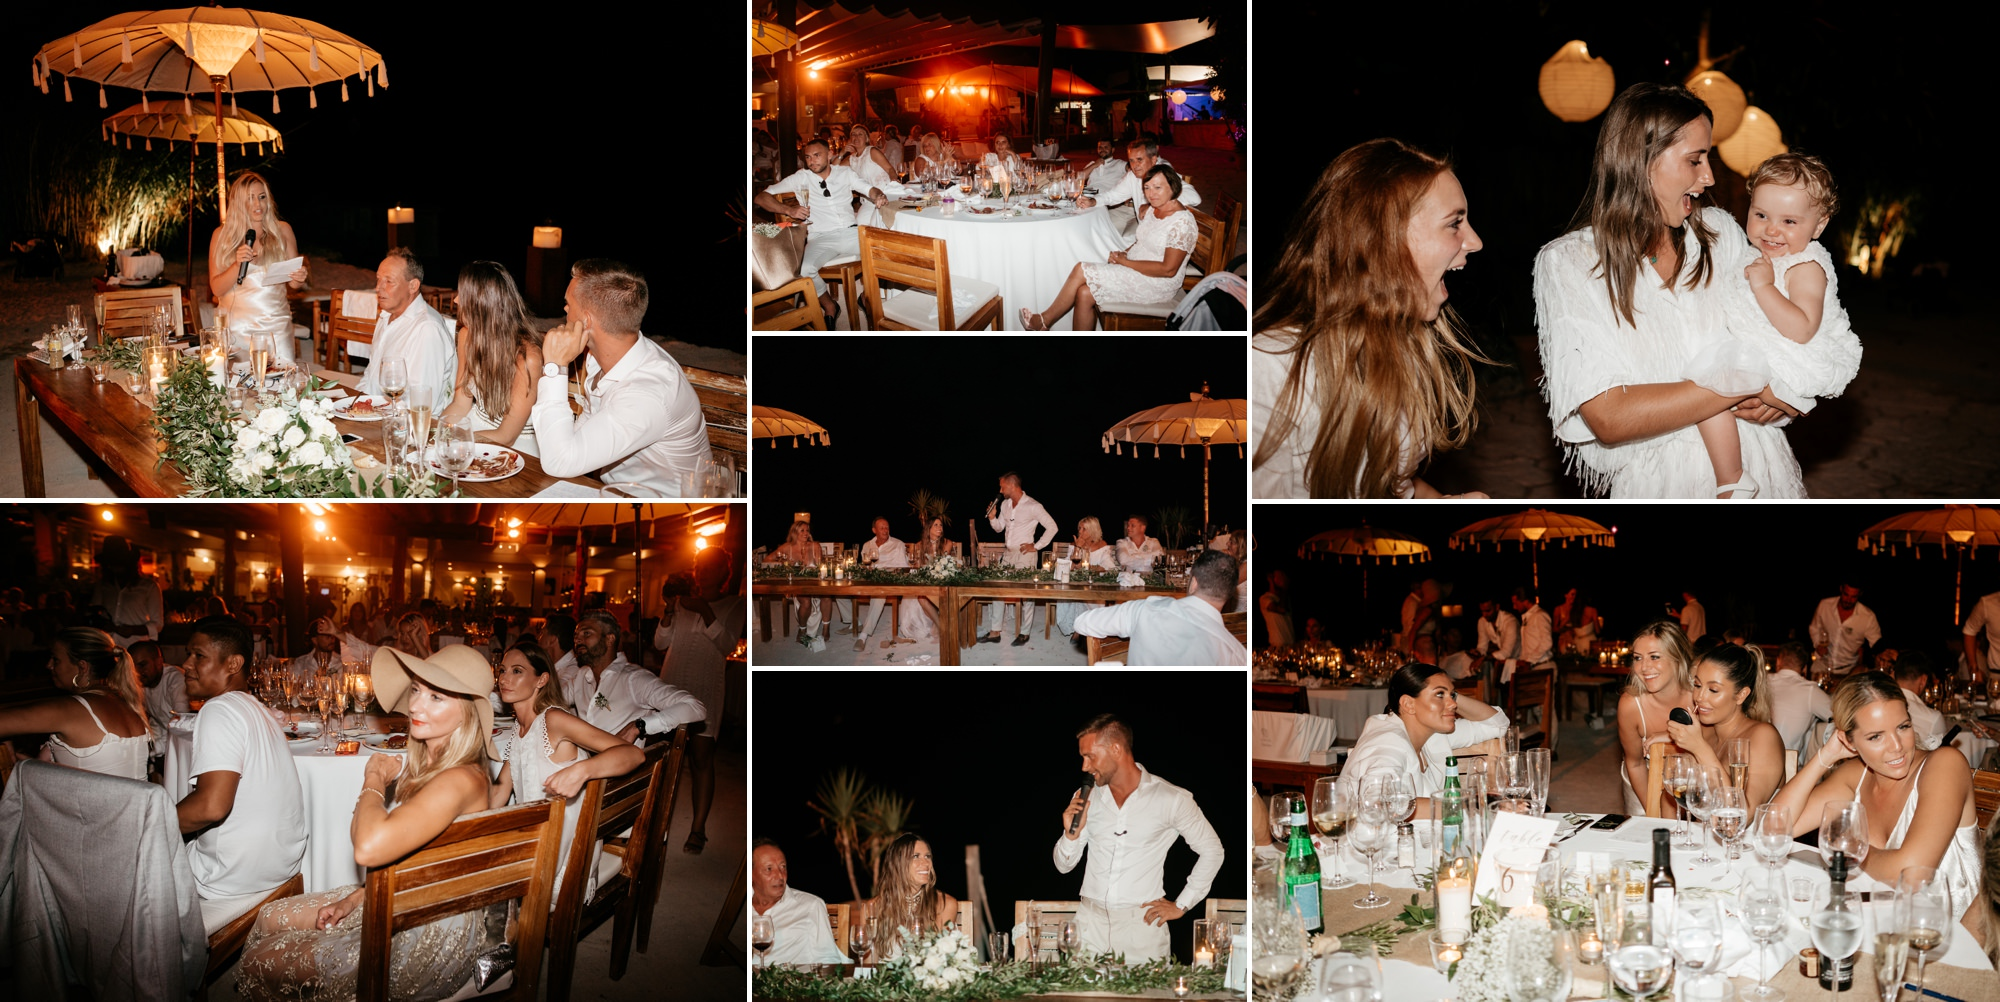 natural wedding photo destination la escollera ibiza 0101 1